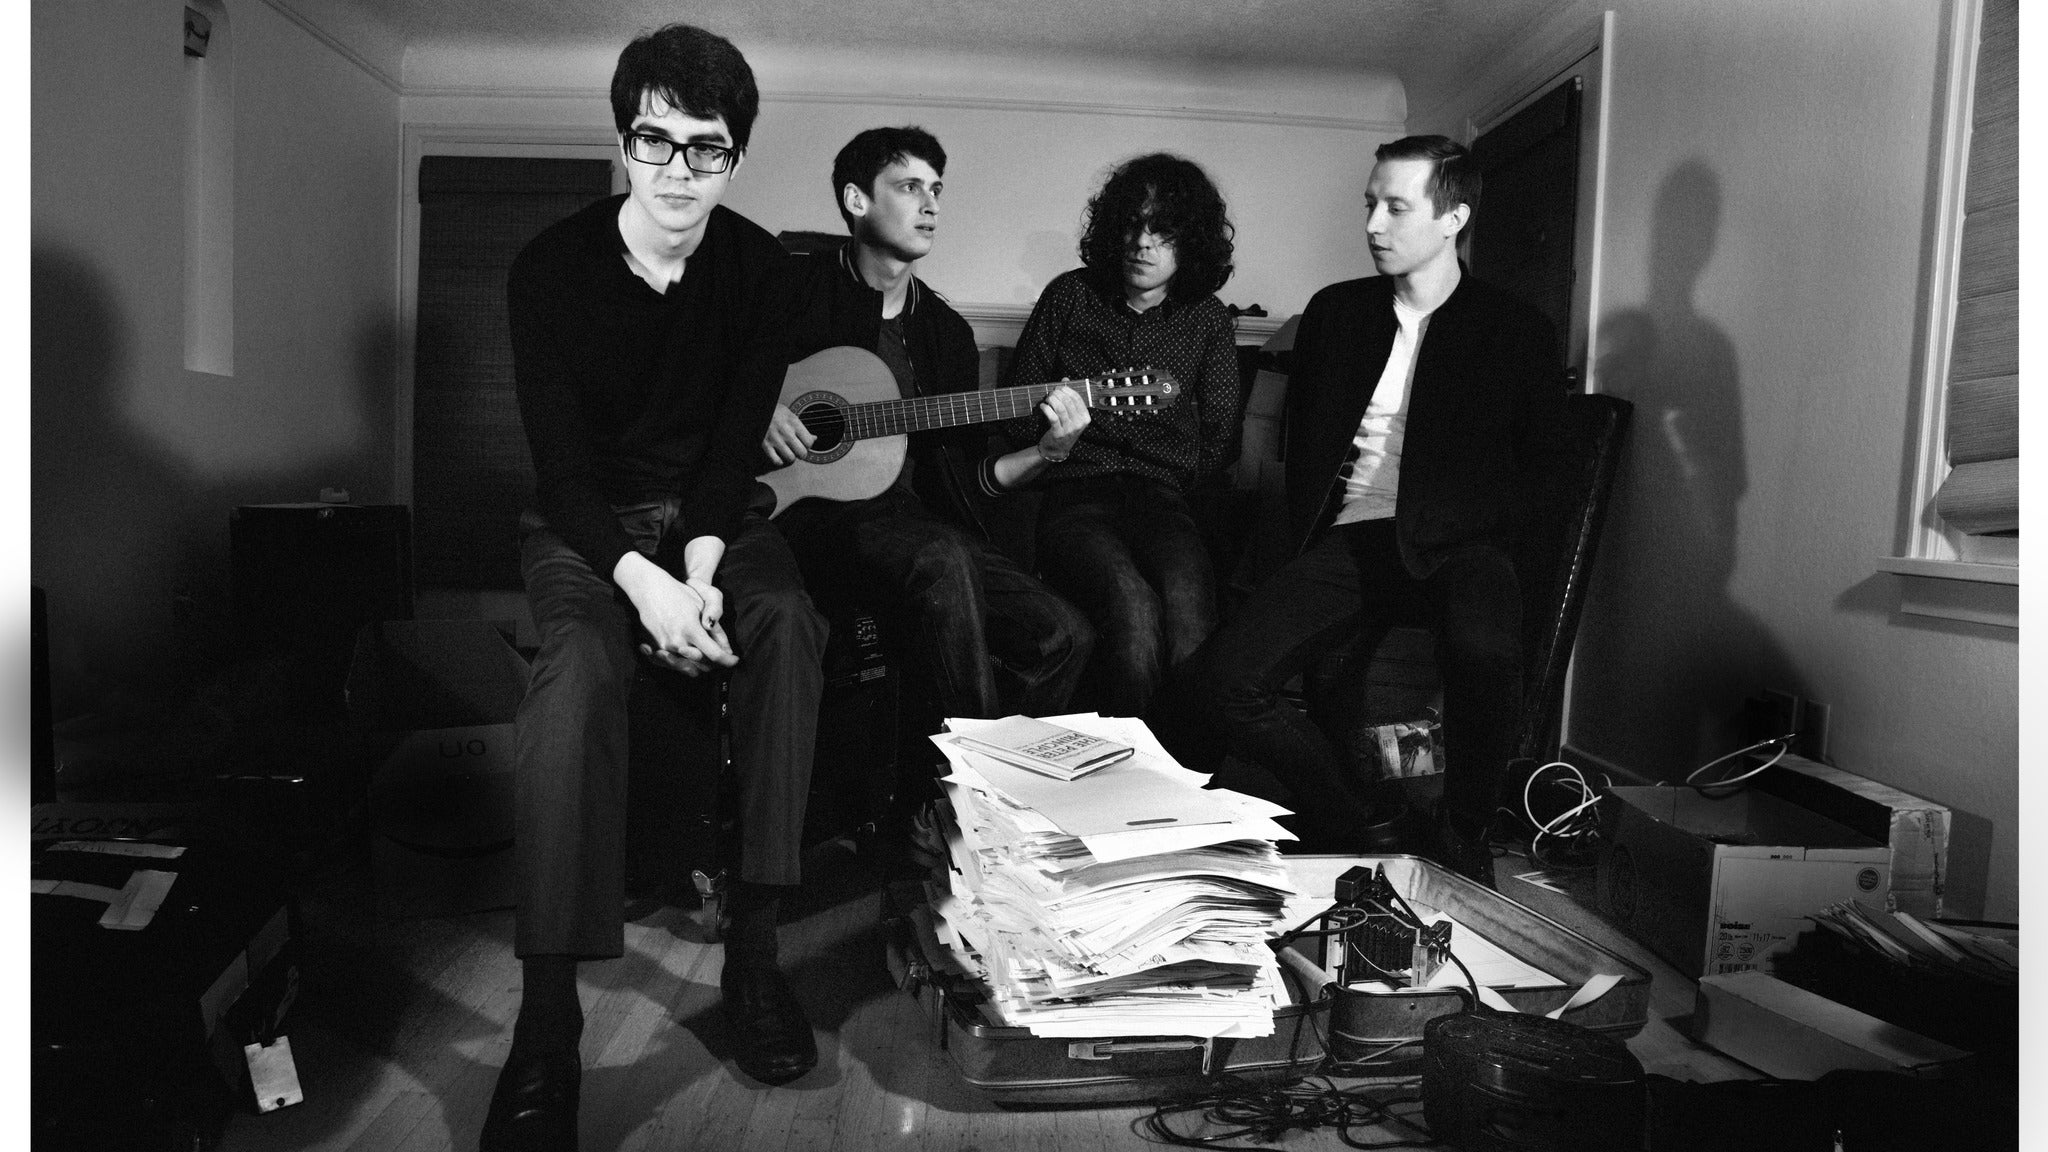 Car Seat Headrest at The Ritz